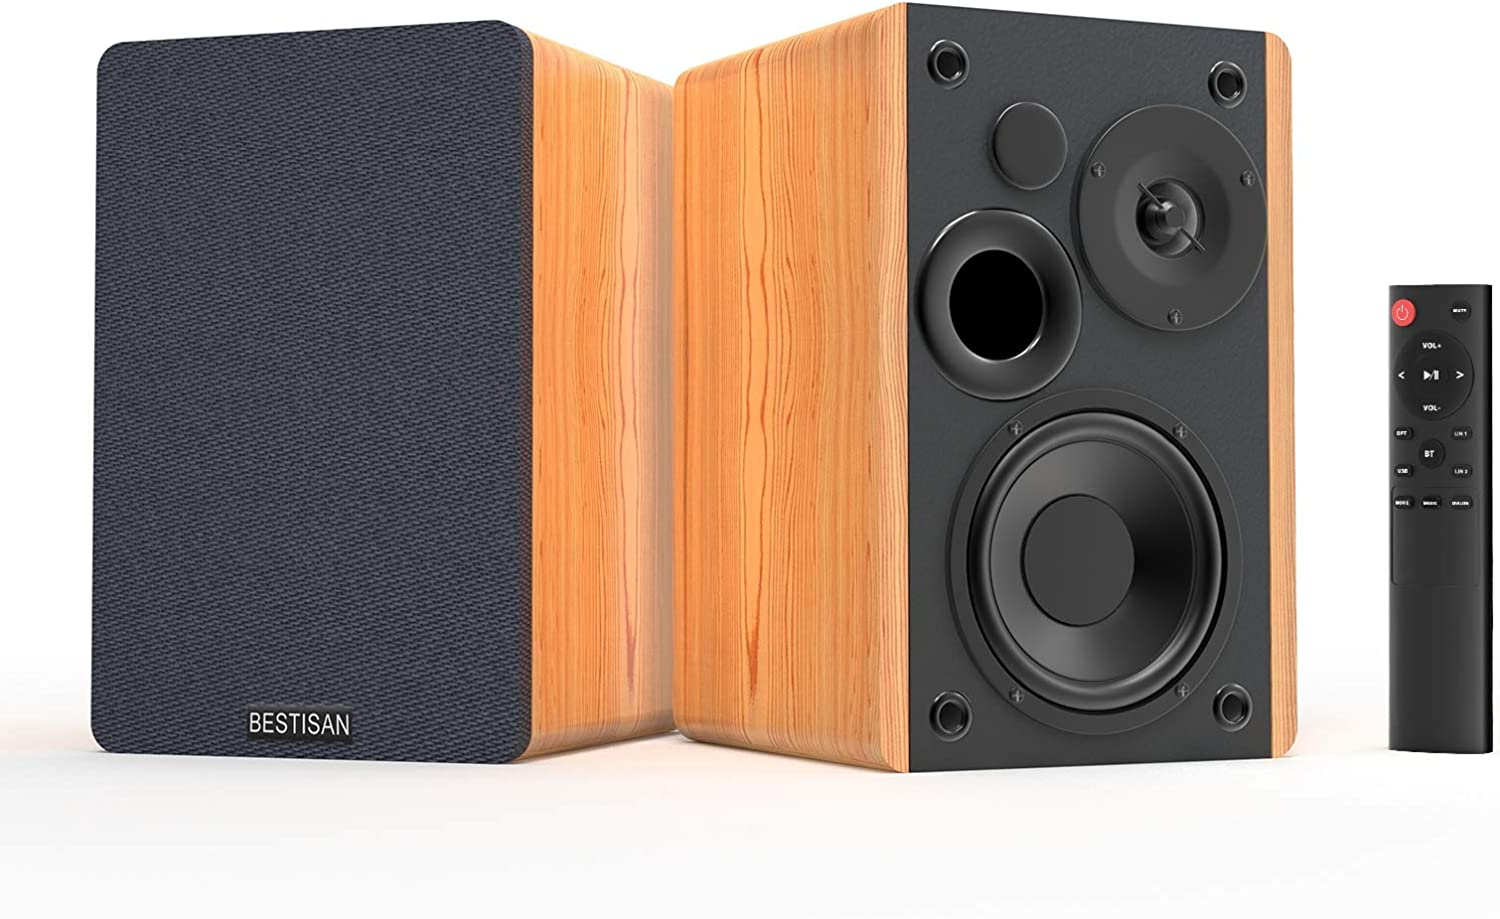 Bookshelf Speakers Bestisan Bluetooth 5.0, 3 Equalizer Modes, 50W Home Theater Bookshelf Speakers, Remote Control, Wooden Enclosure, 2.0 Stereo, RCA/Aux/Optical Connection